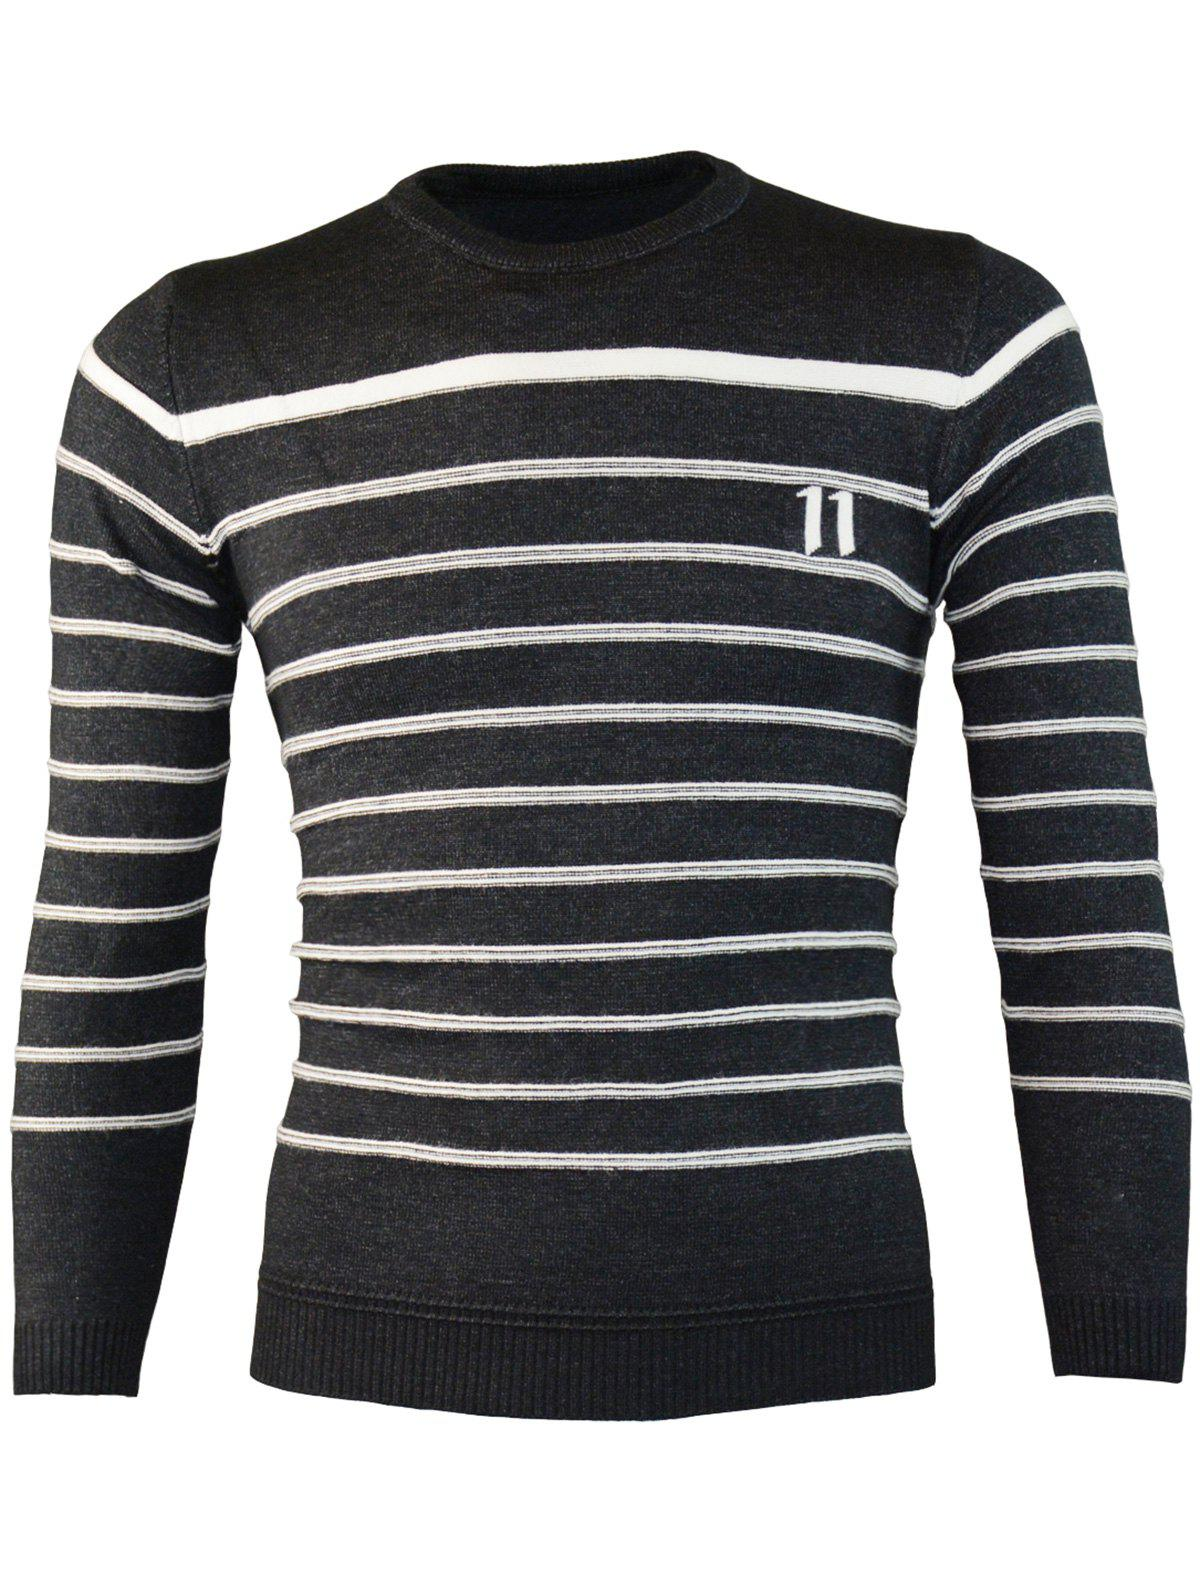 Affordable Number Jacquard Stripe Crew Neck Sweater